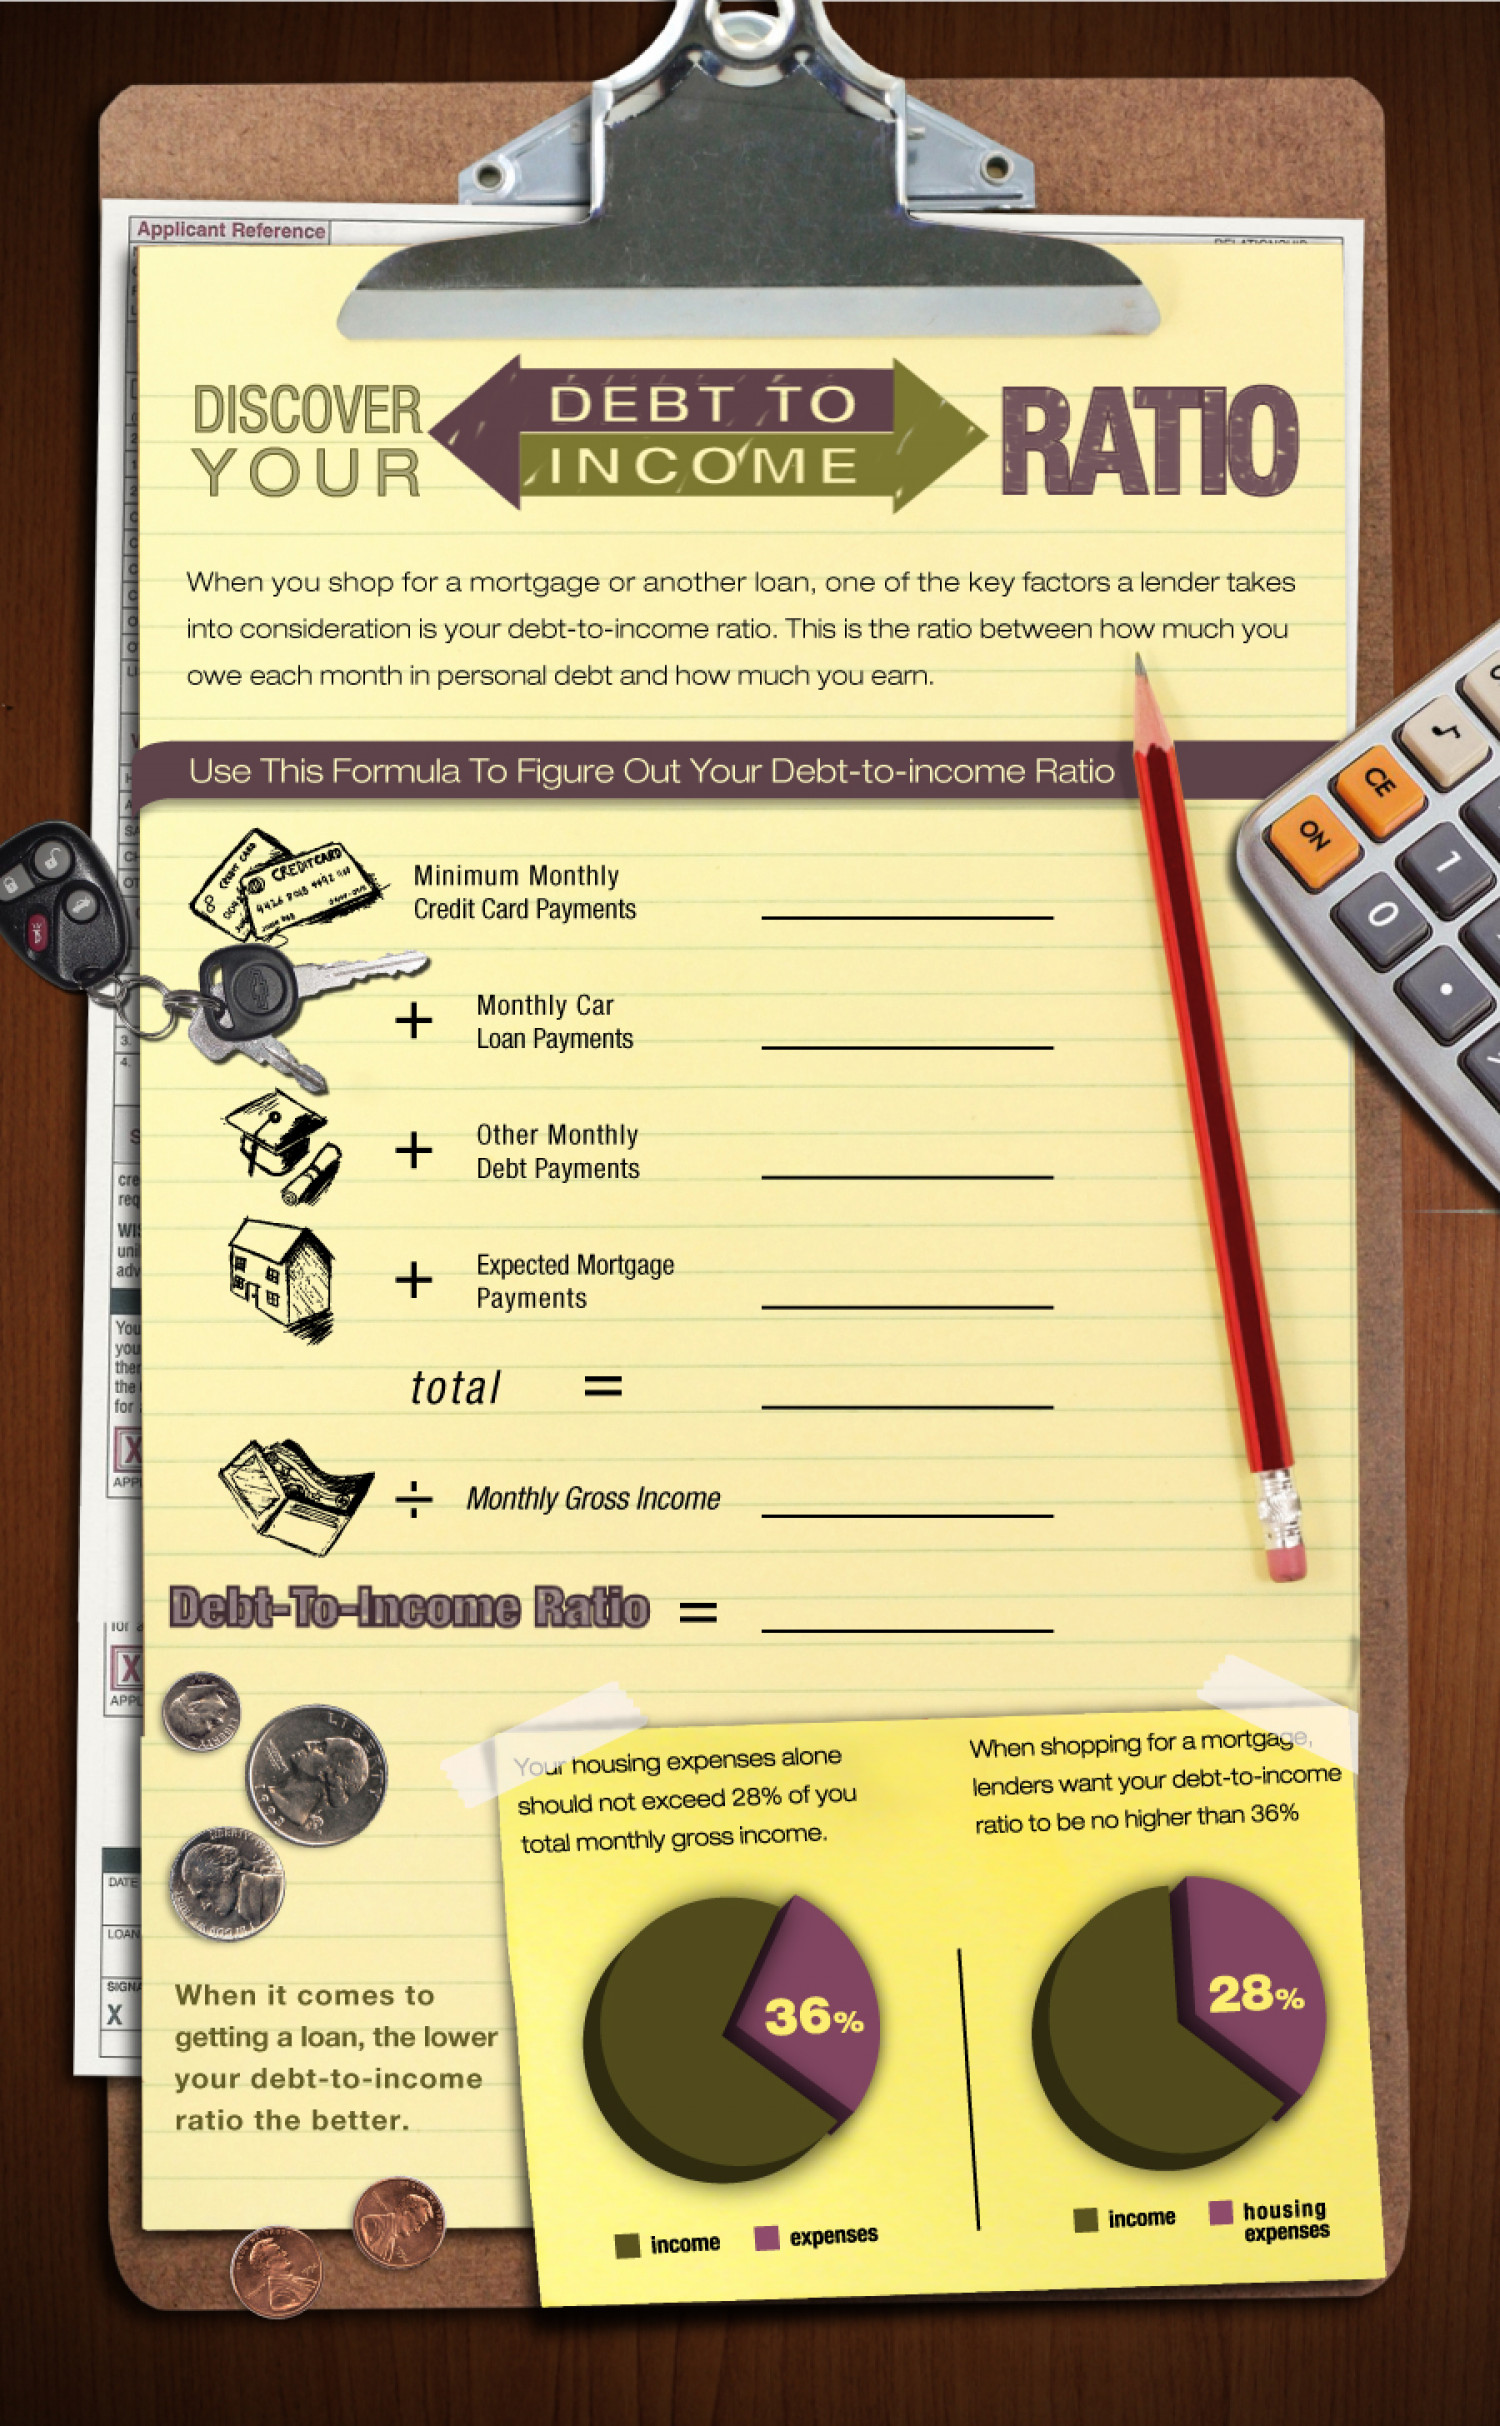 Discover Your Debt to Income Ratio Infographic